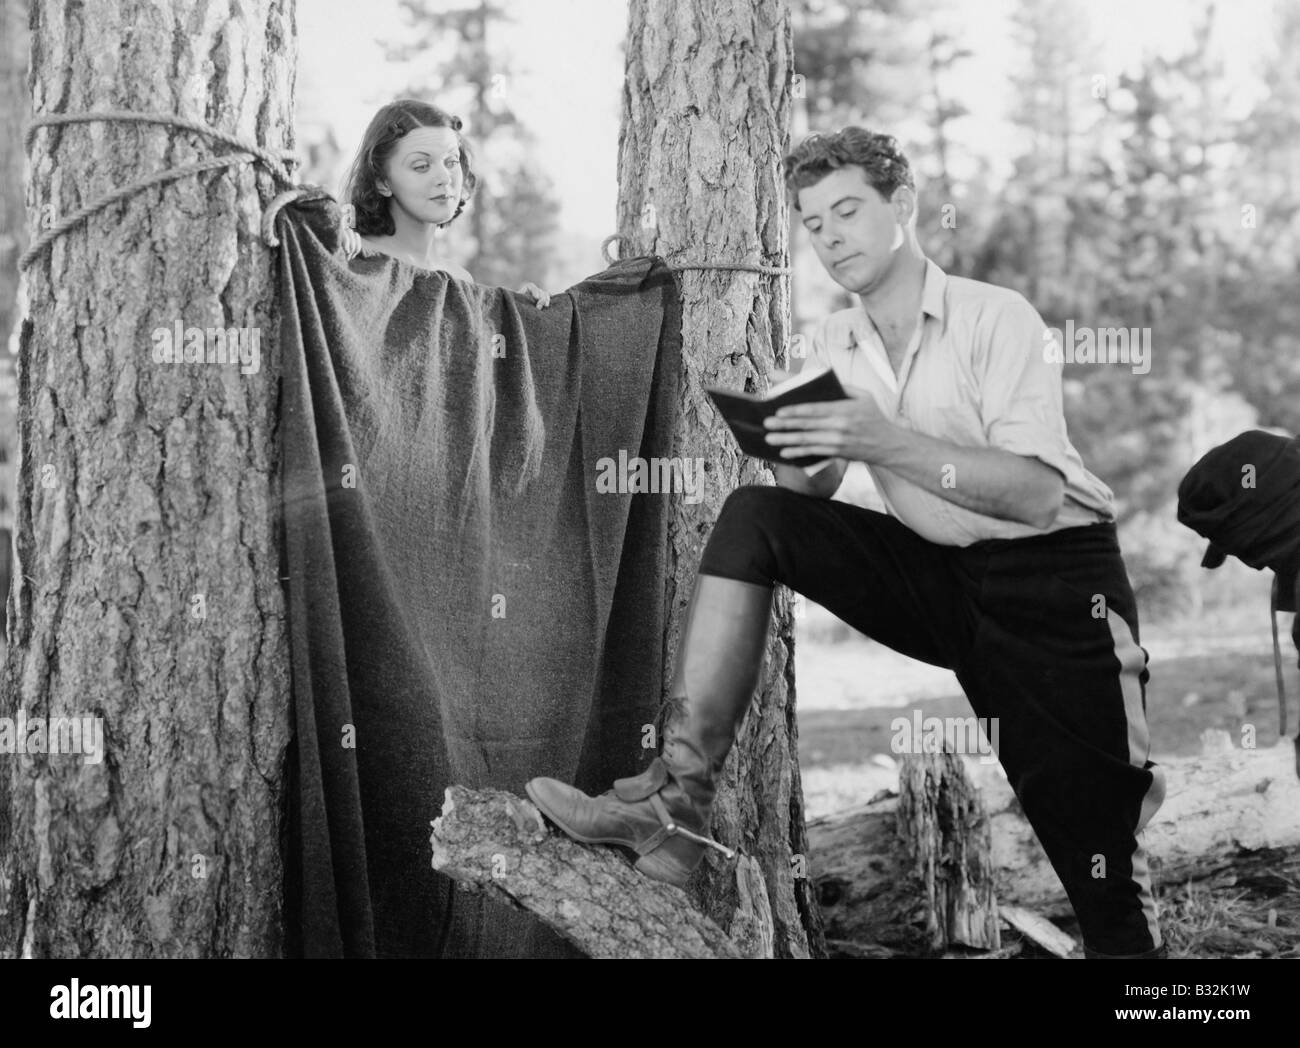 Roughing it in the woods - Stock Image